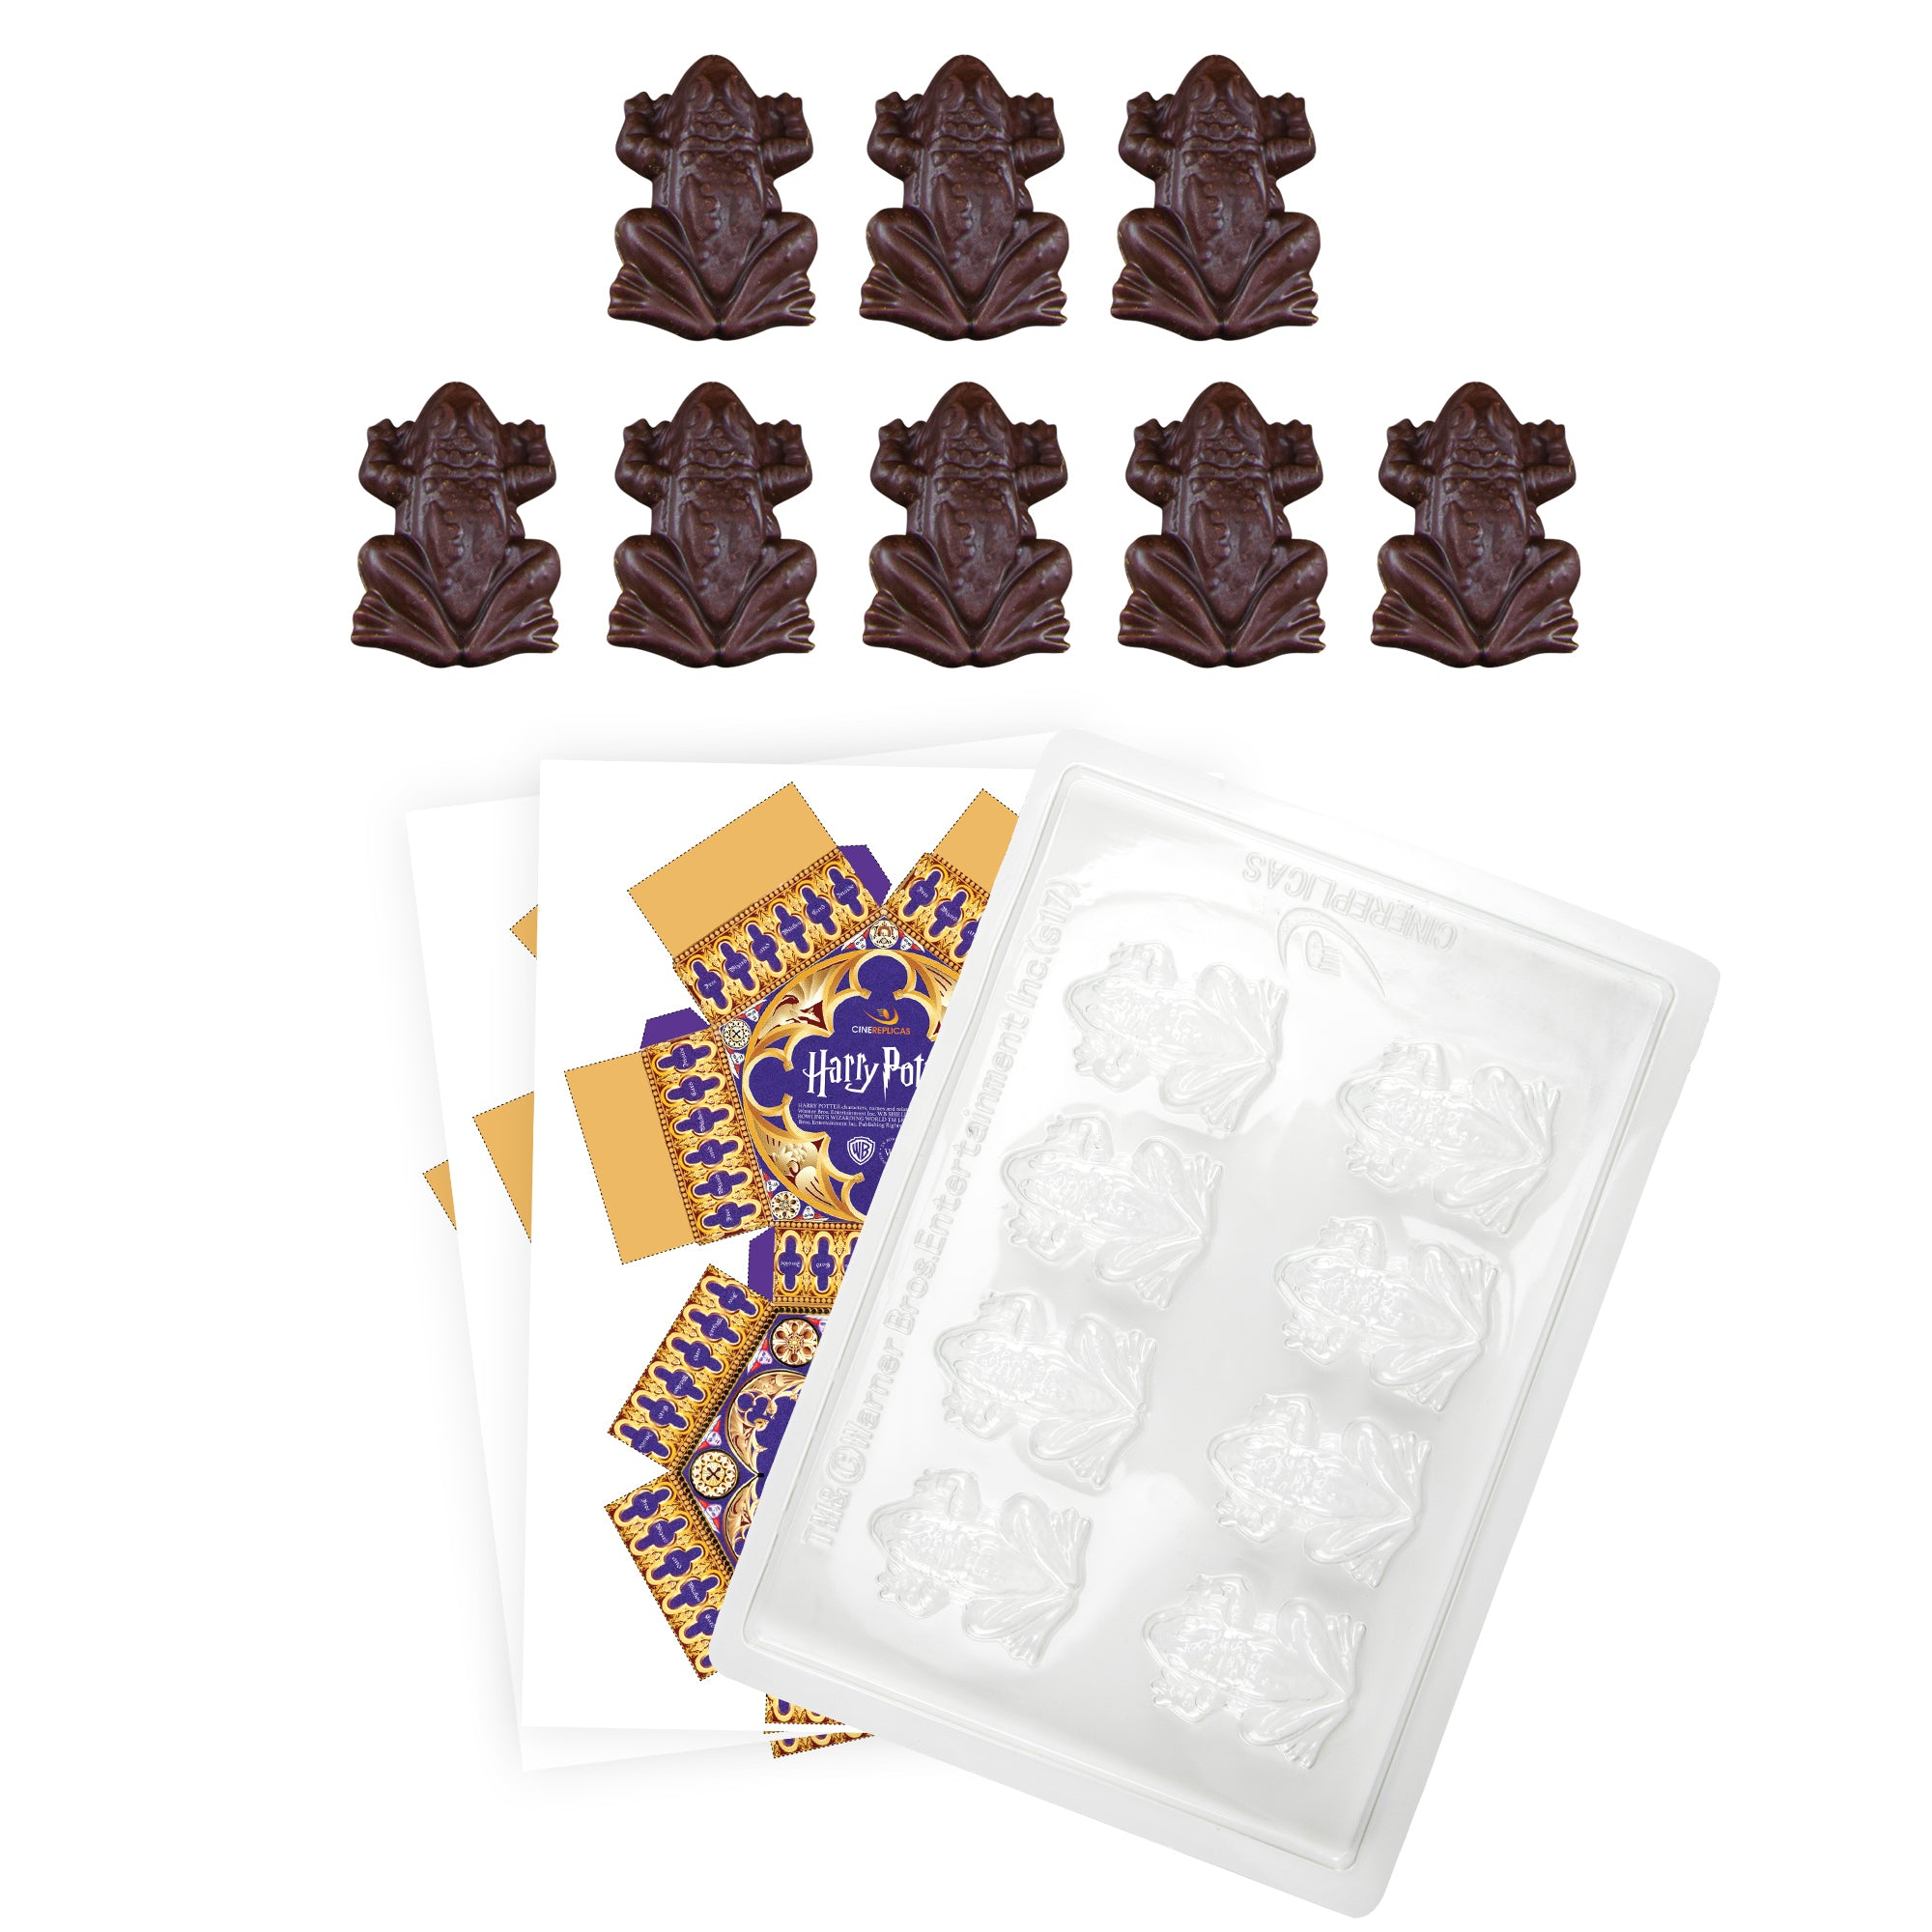 graphic about Harry Potter Chocolate Frog Cards Printable named Harrry Potter Chocolate Frog Mildew + 8 Do-it-yourself bins